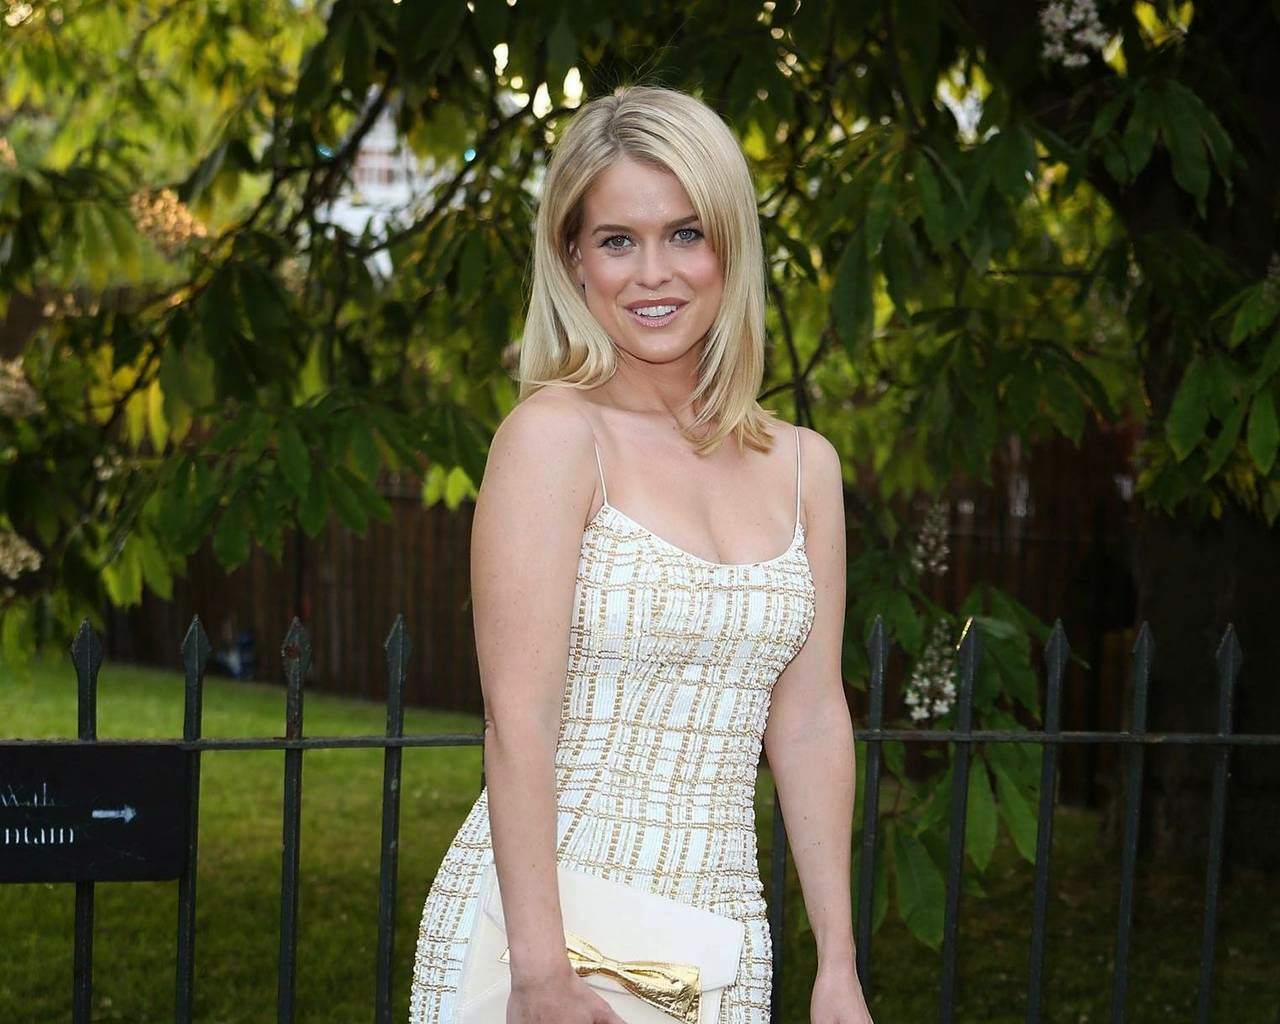 Hollywood Actress Wallpaper: Alice Eve HD Wallpapers